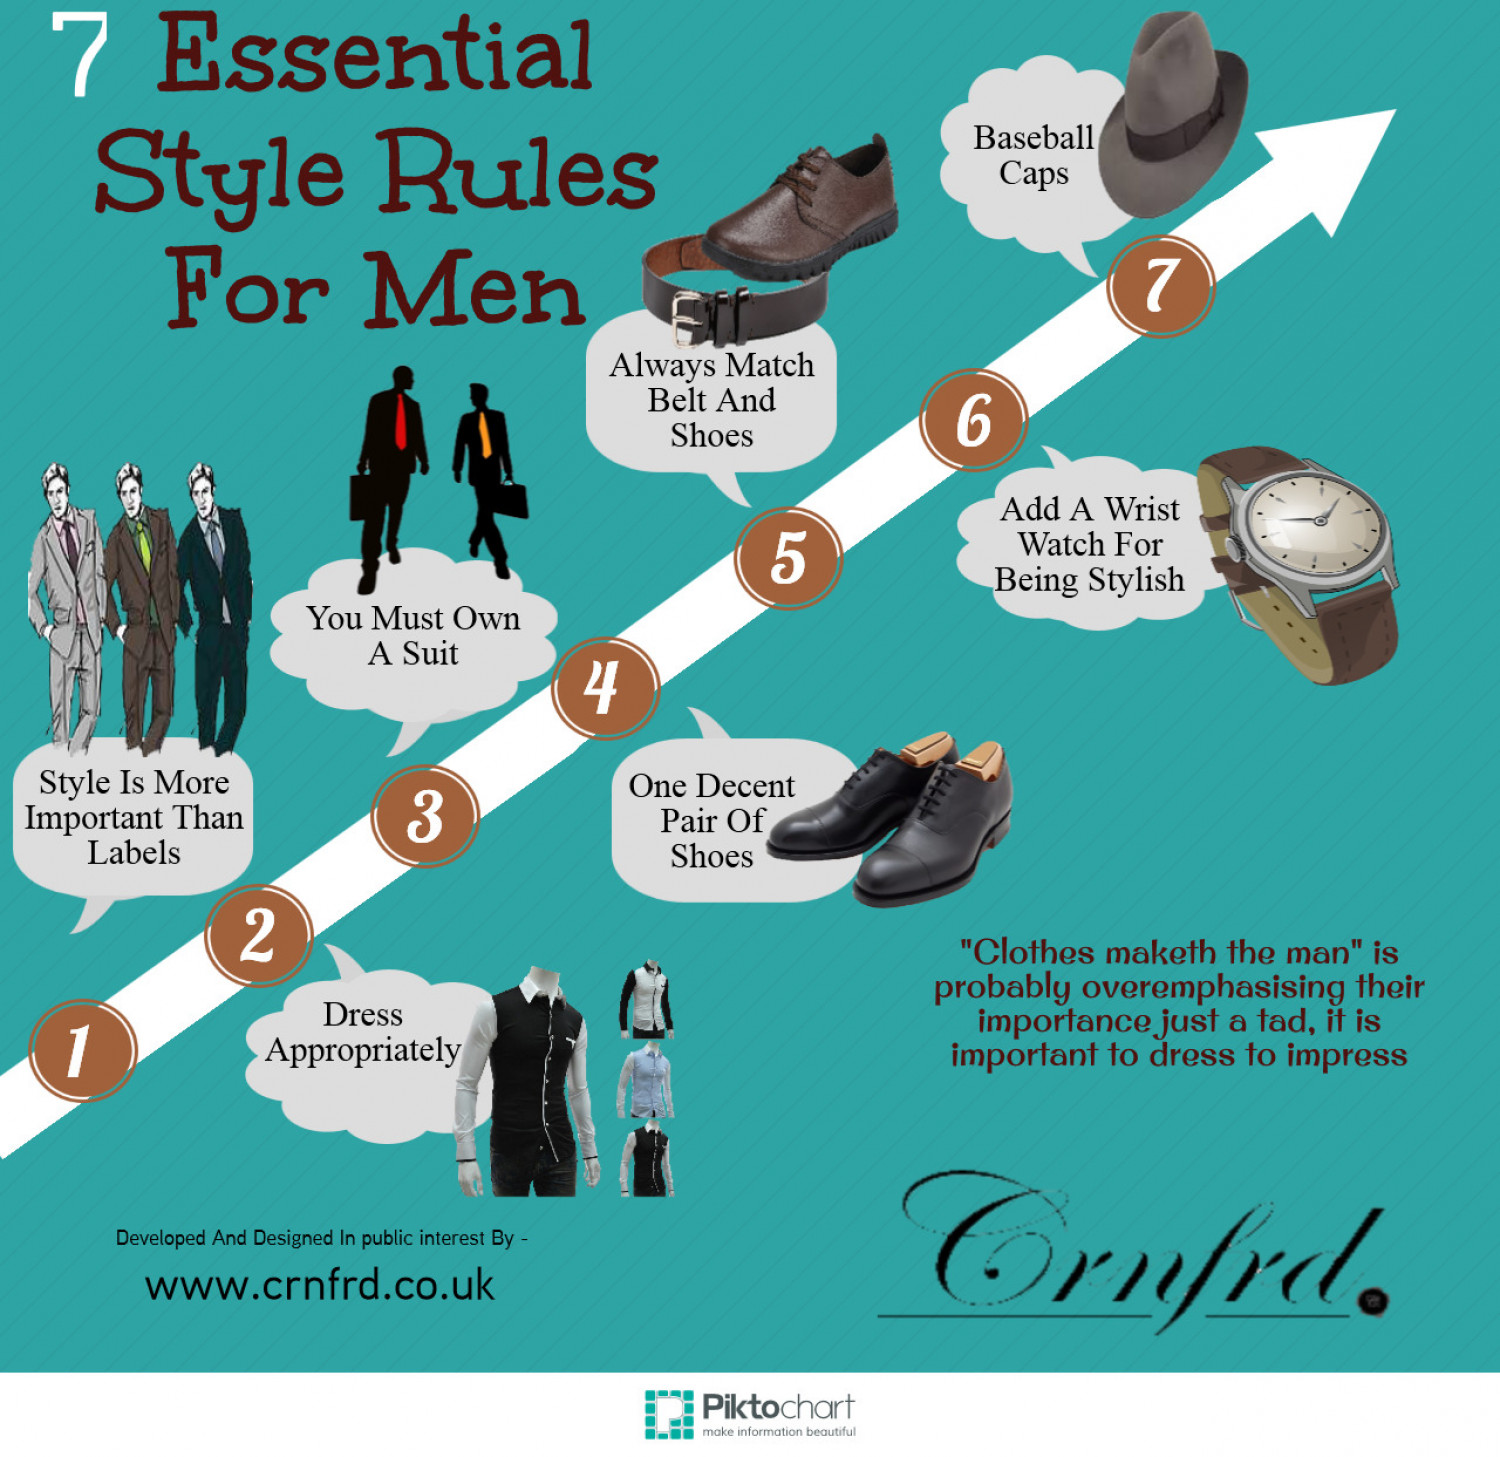 7 Essential Style Rules For Men Infographic